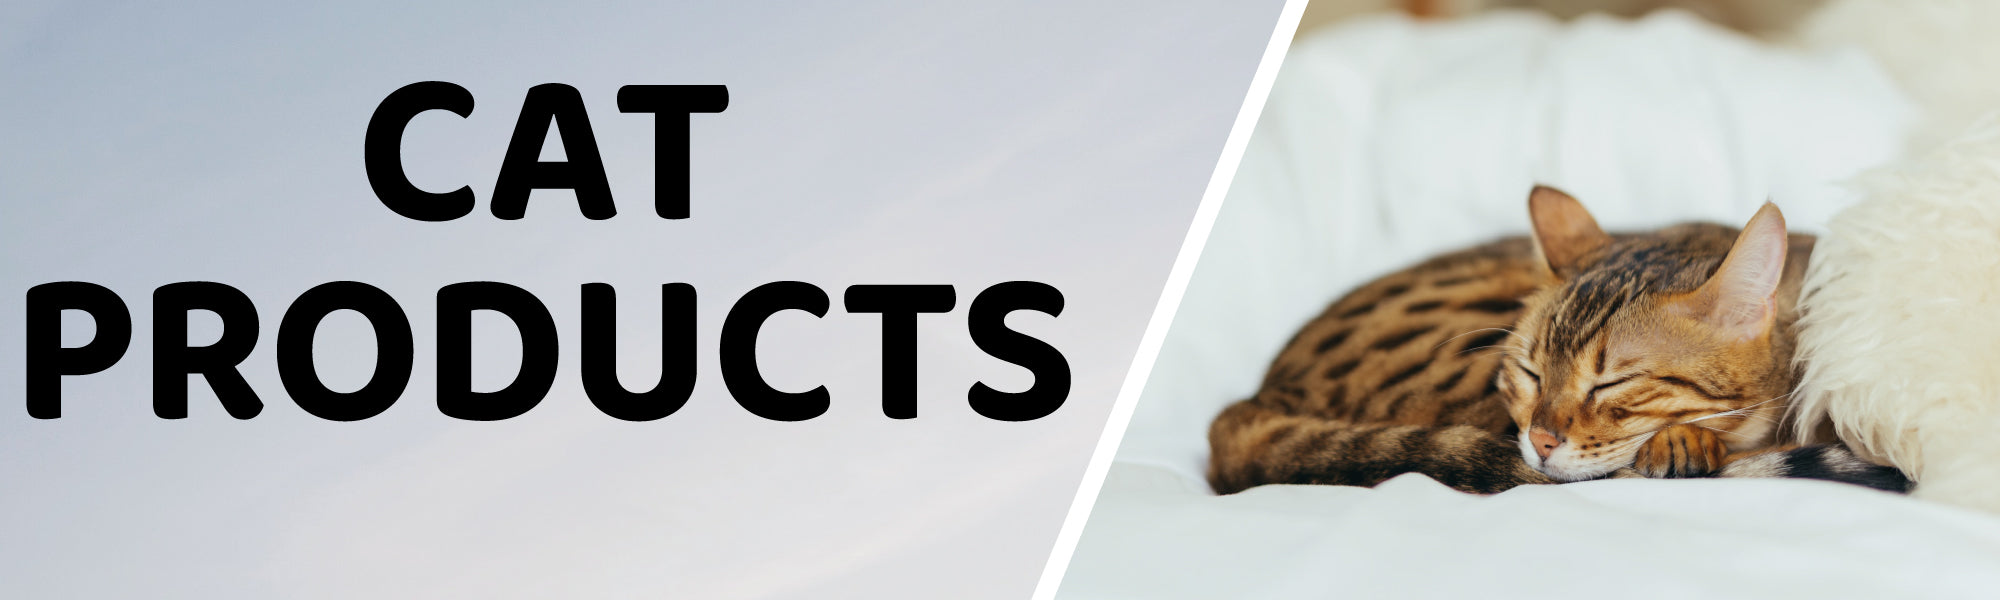 Cat Products Banner